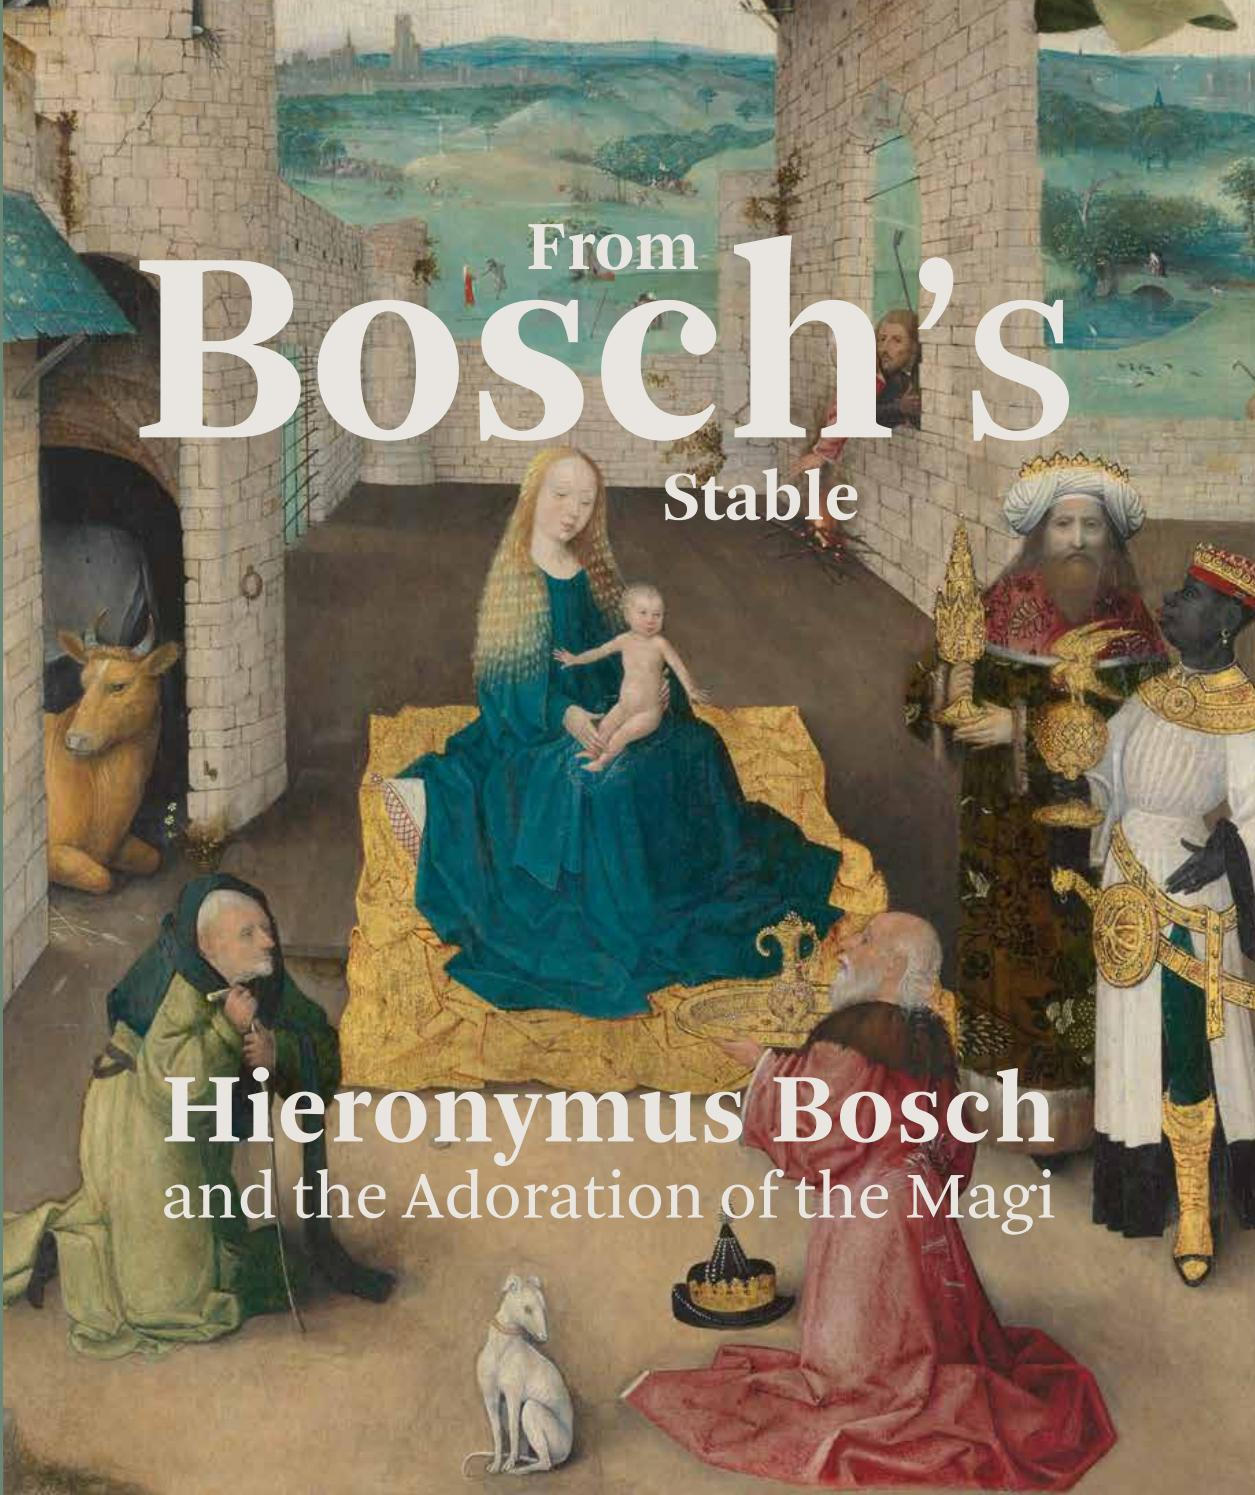 From Boschs Stable Hieronymus  Bosch and the Adoration of the Magi